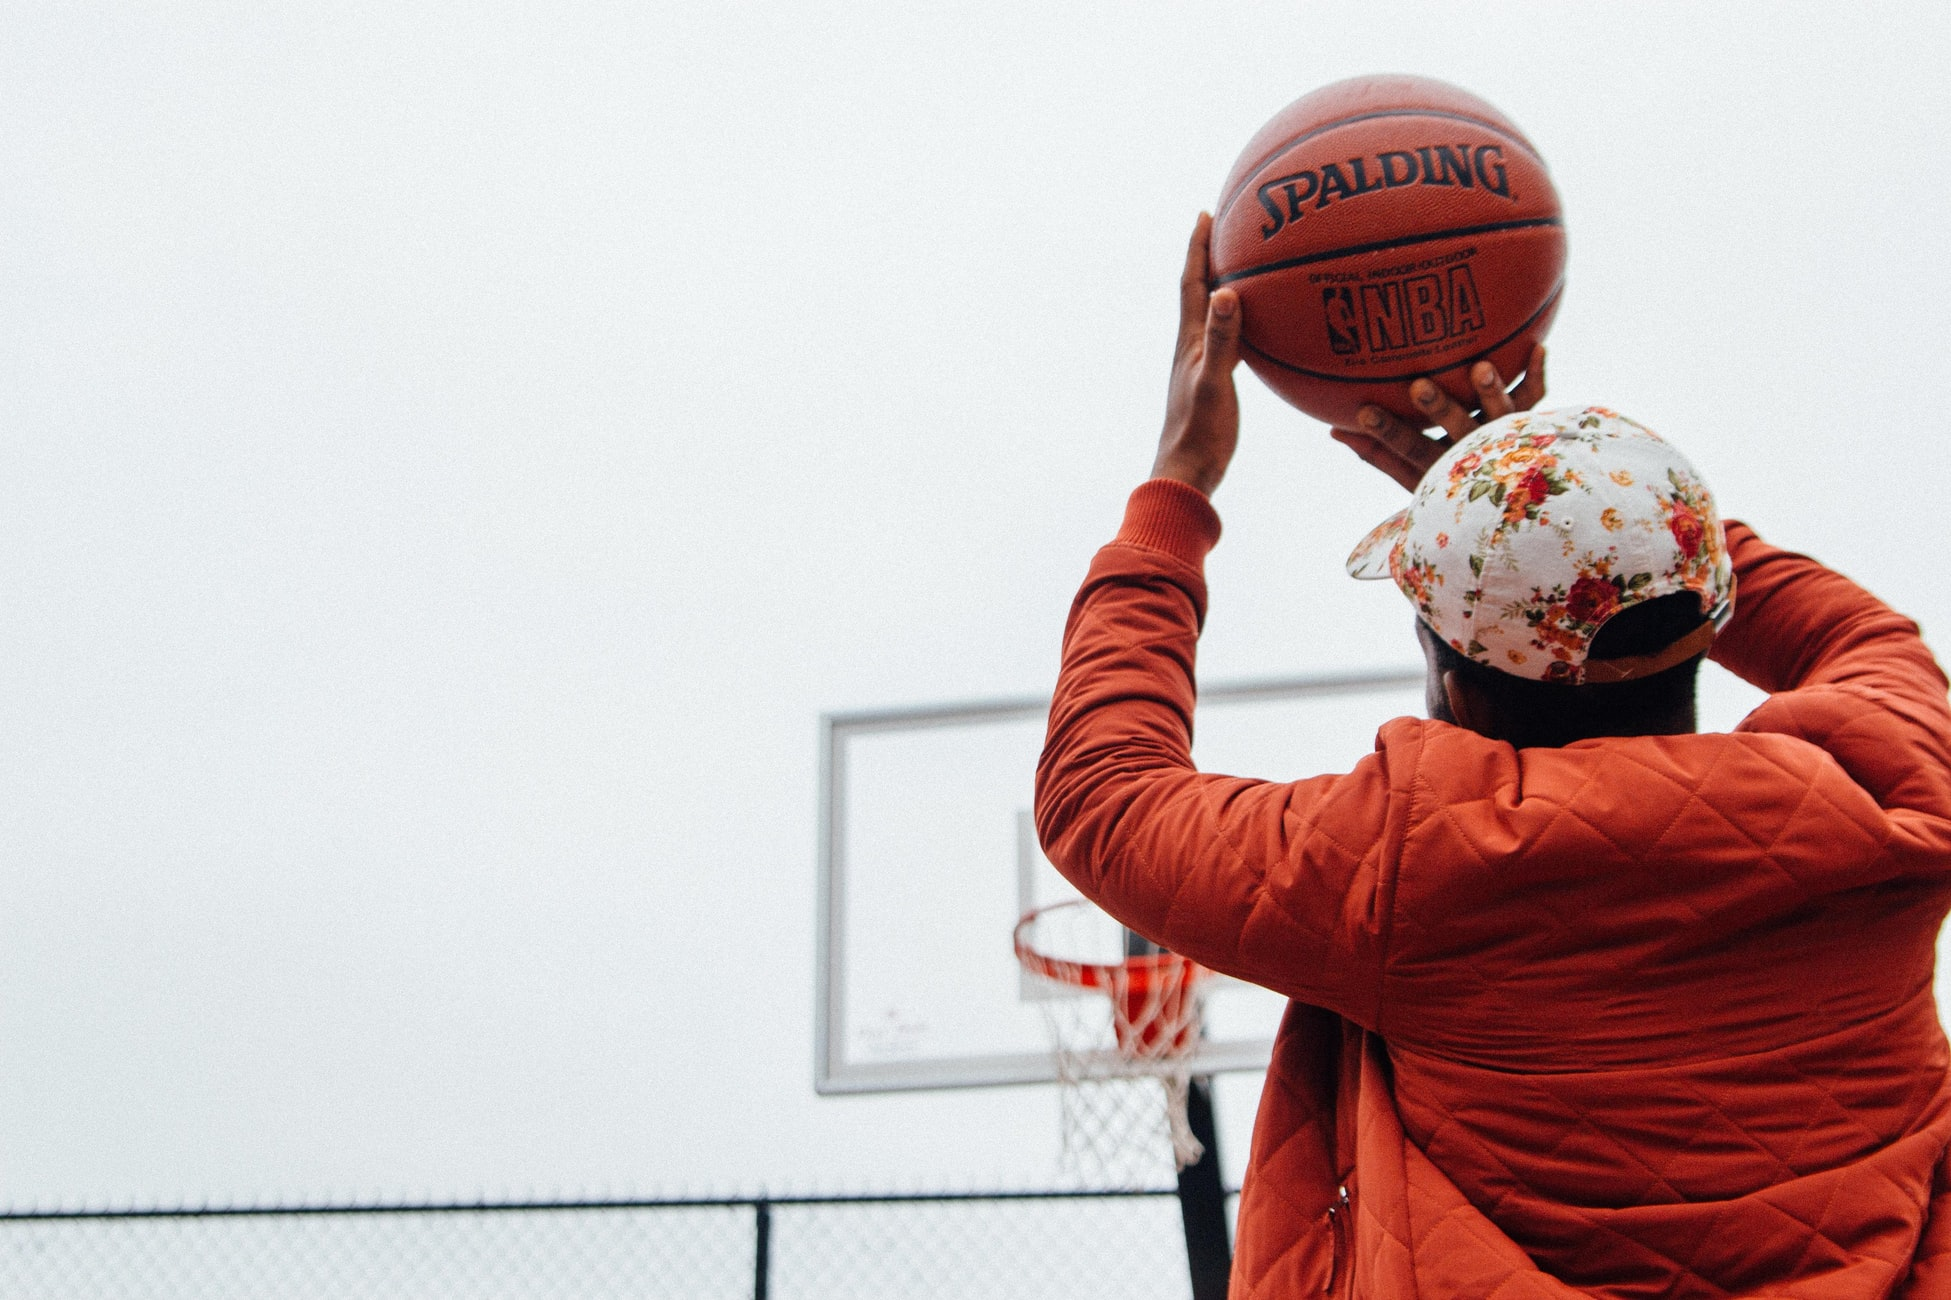 How To Prevent The Most Common Basketball Shooting Bad Habit